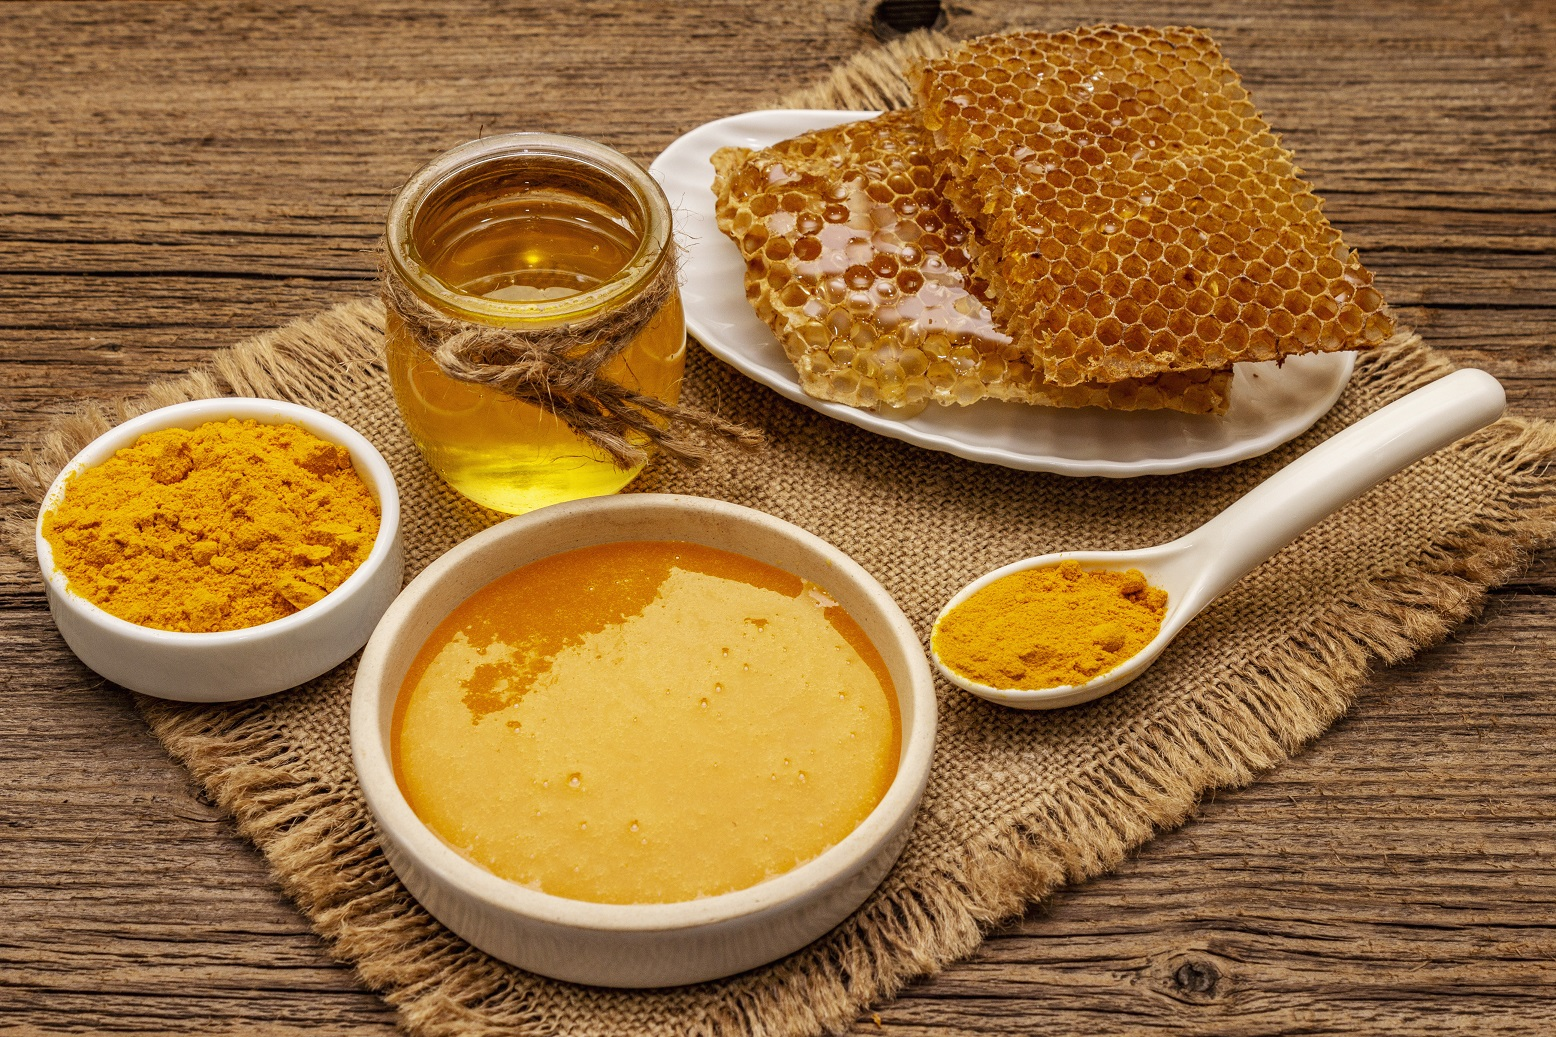 Honey with Turmeric